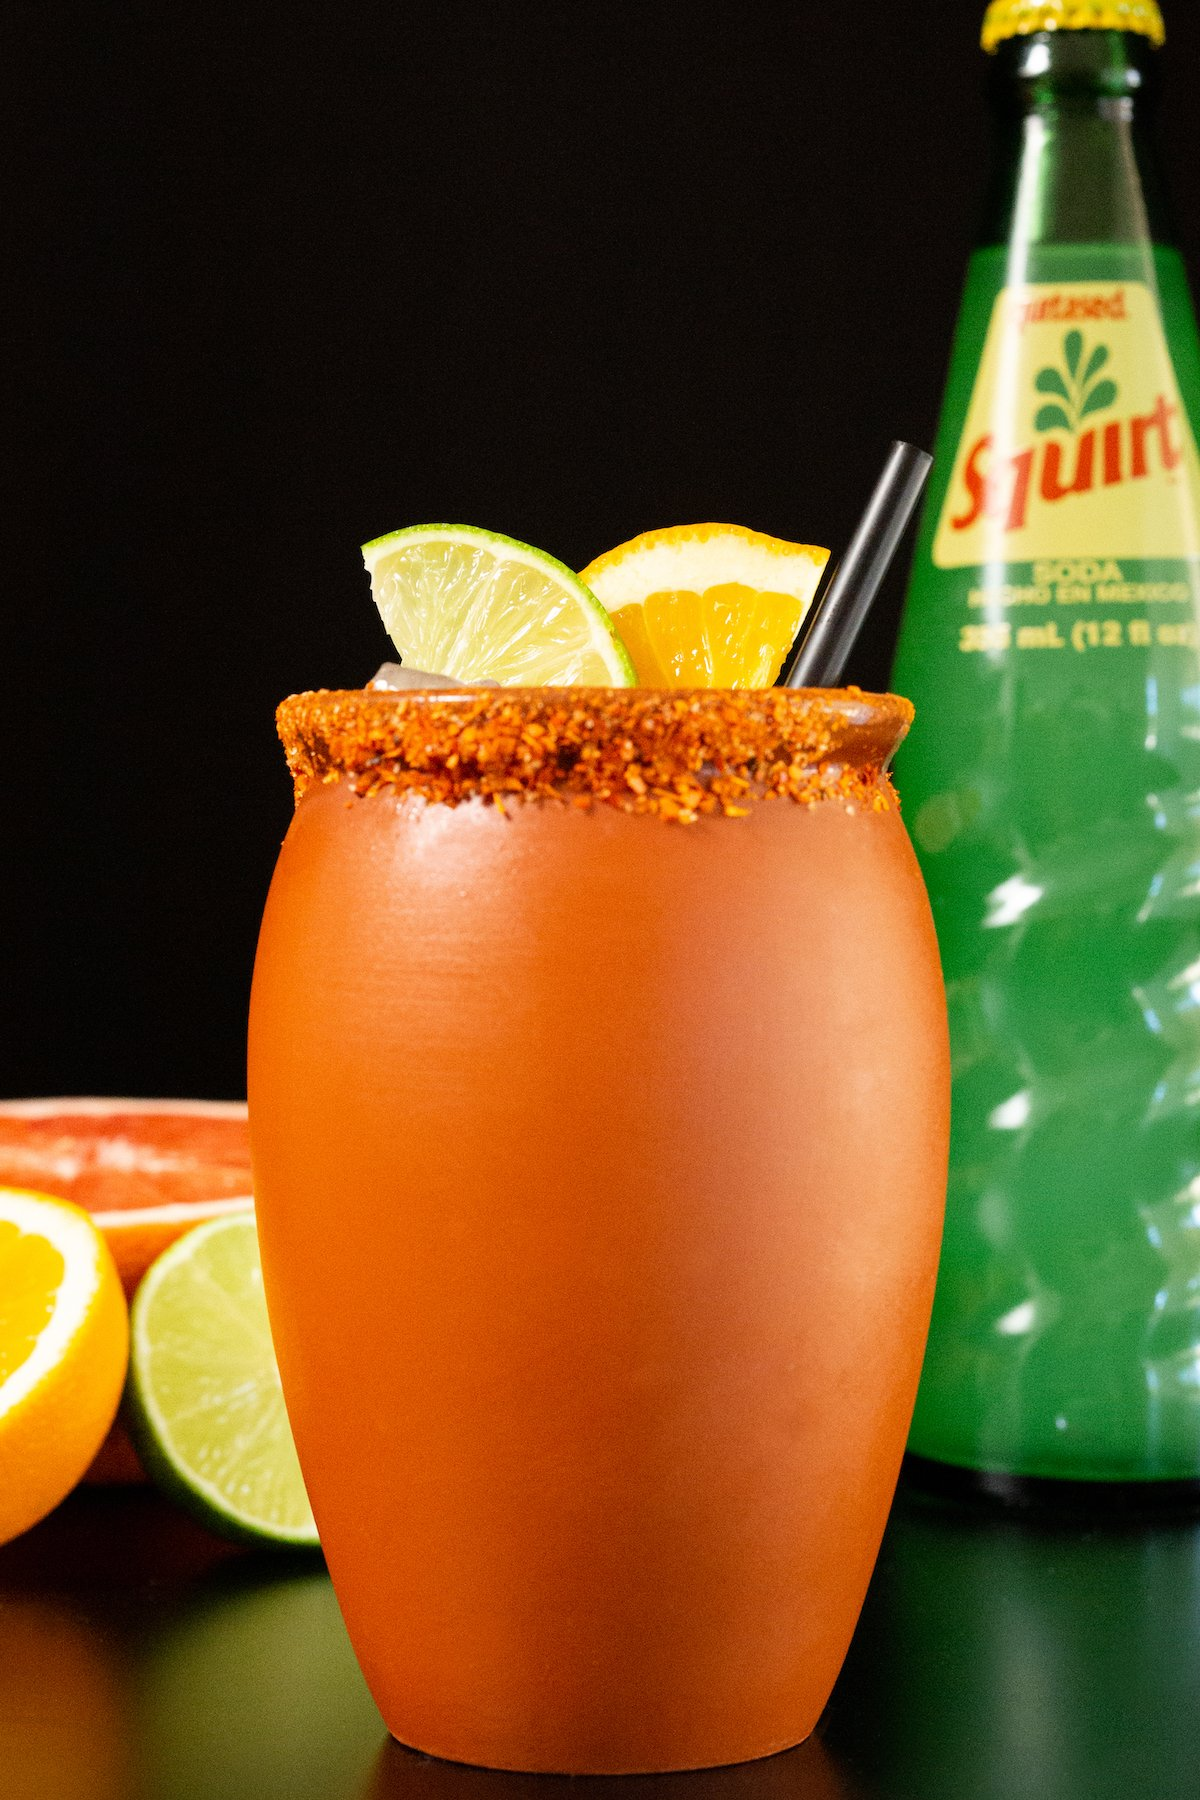 A clay jar that's filled with a cantarito cocktail is garnished with a lime & orange slice. It sits on a black background next to a glass bottle of squirt soda and sliced grapefruit, orange, and lime.